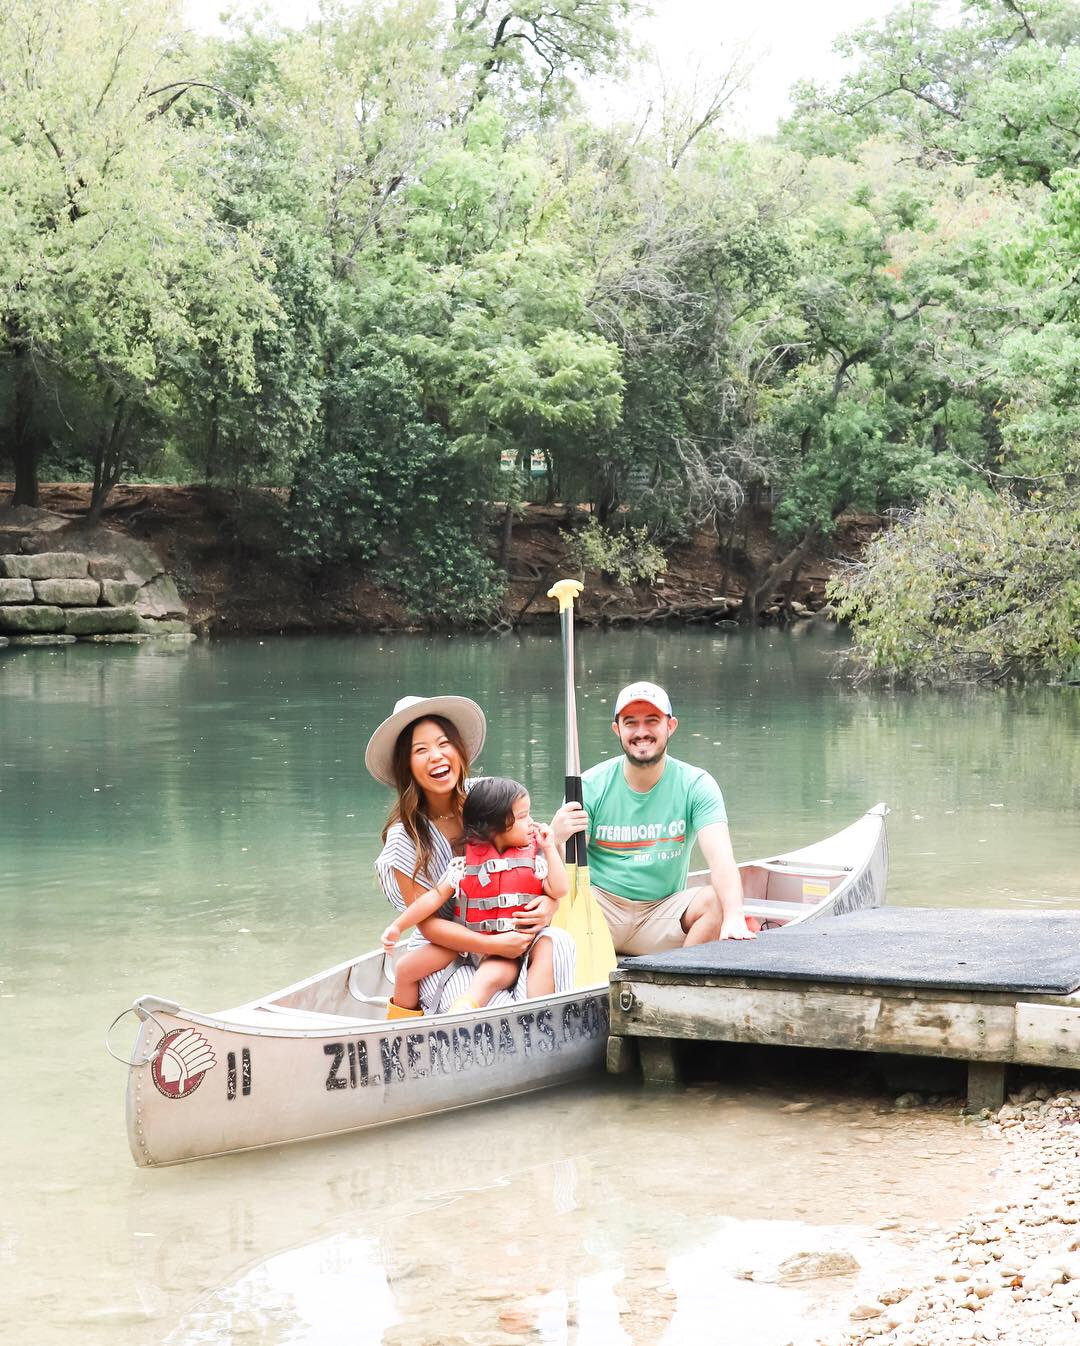 Austin in 72 Hours - Most Instagrammable Spots to Stay, Eat and Play with a Toddler Zilker Park Boat Rental